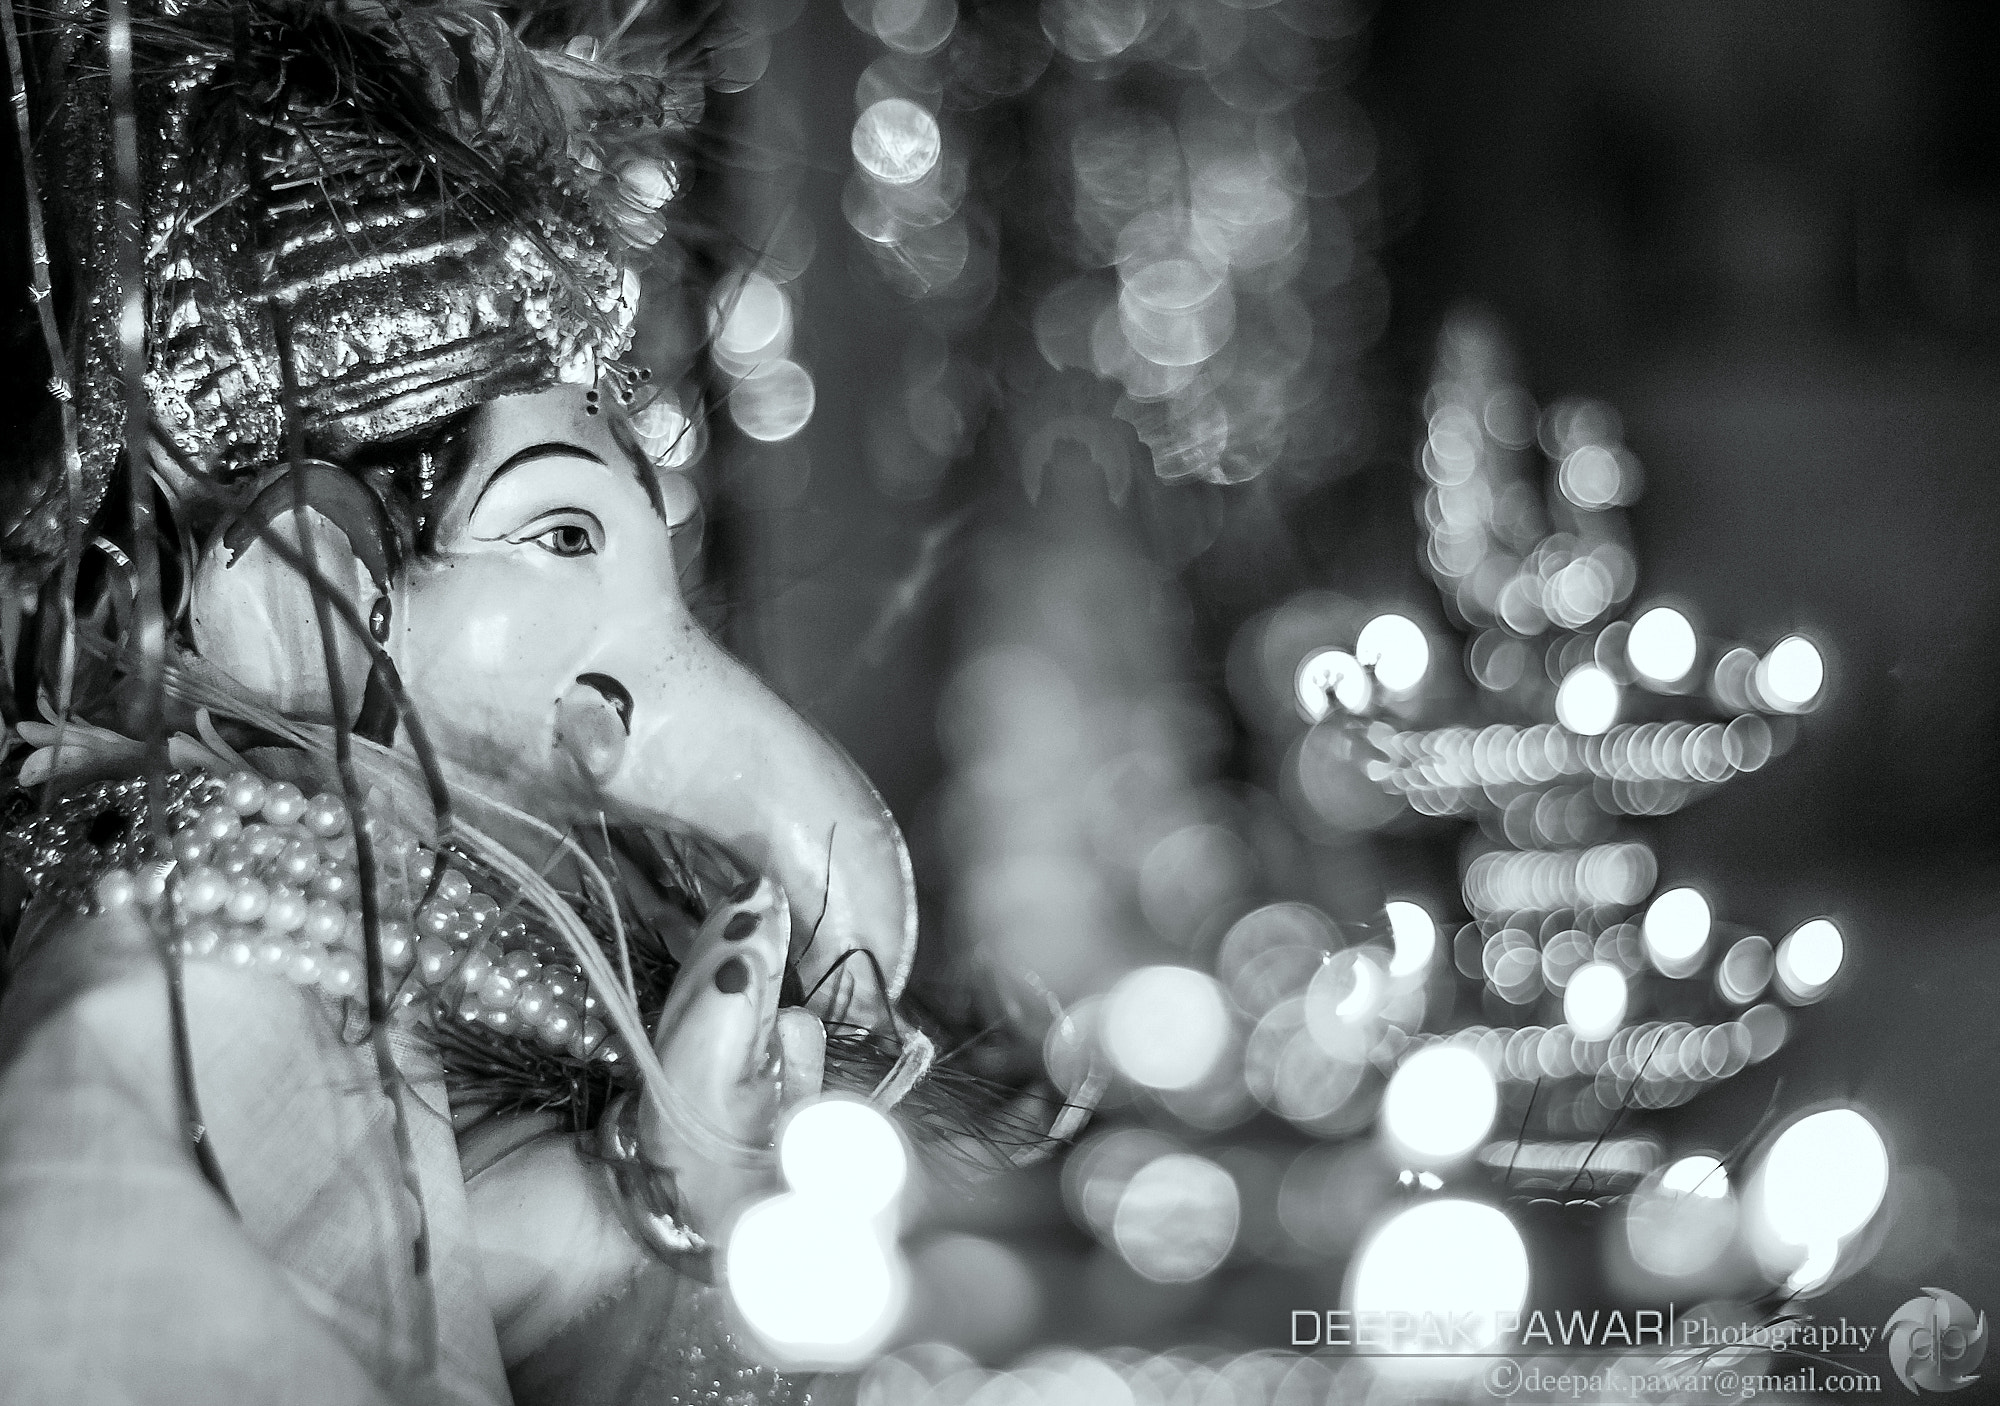 Photograph Ganesh idol and the lamps by Deepak Pawar on 500px